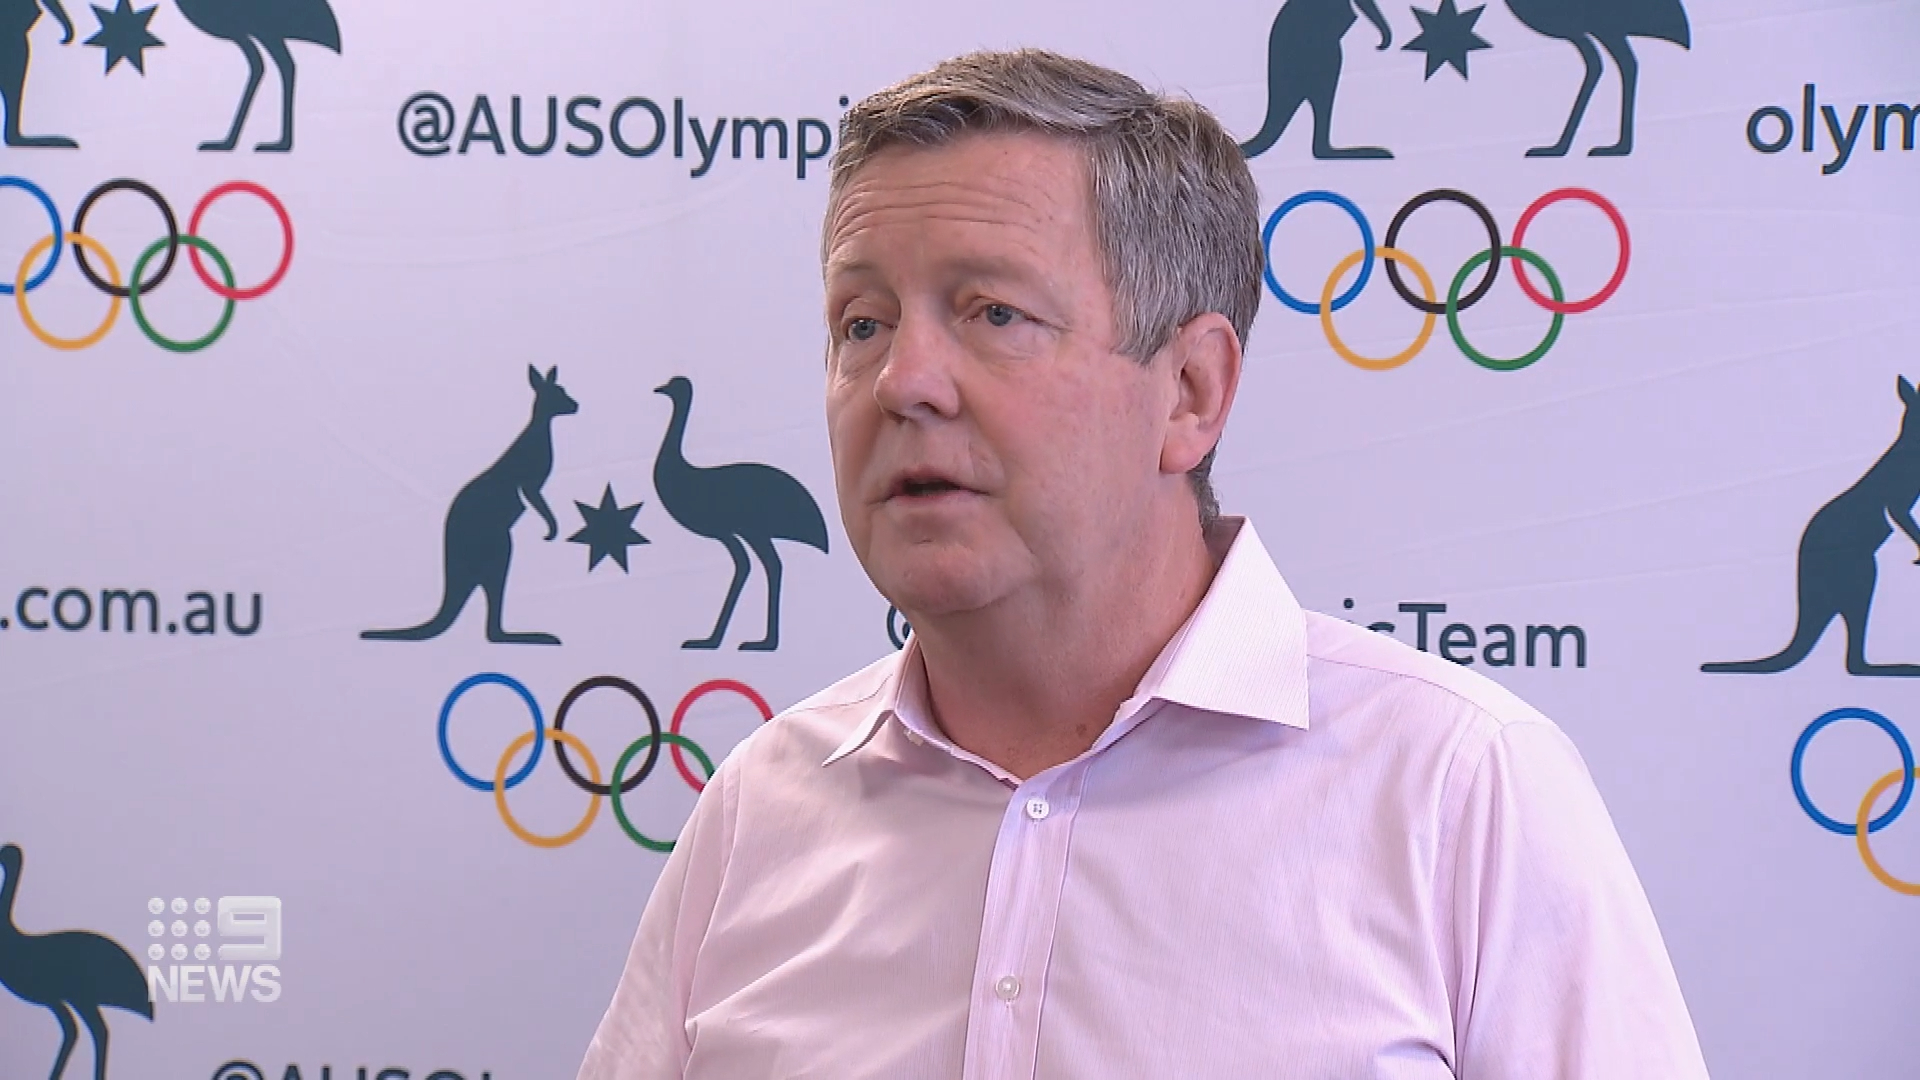 Australian Olympic committee pushes ahead with preparations